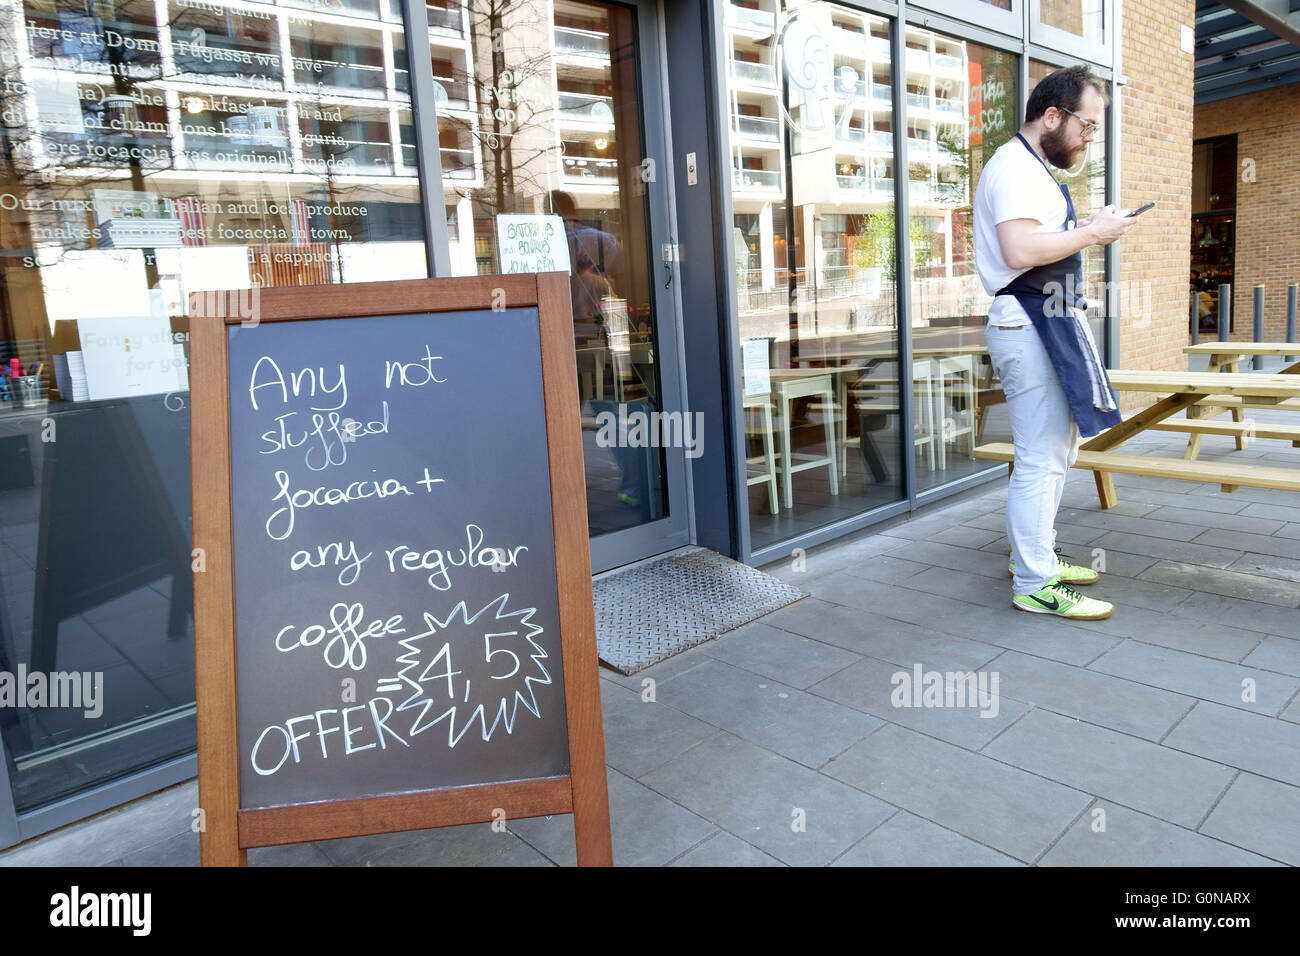 Gentrification in Dalston, East London - trendy new cafe in Dalston Square - Stock Image